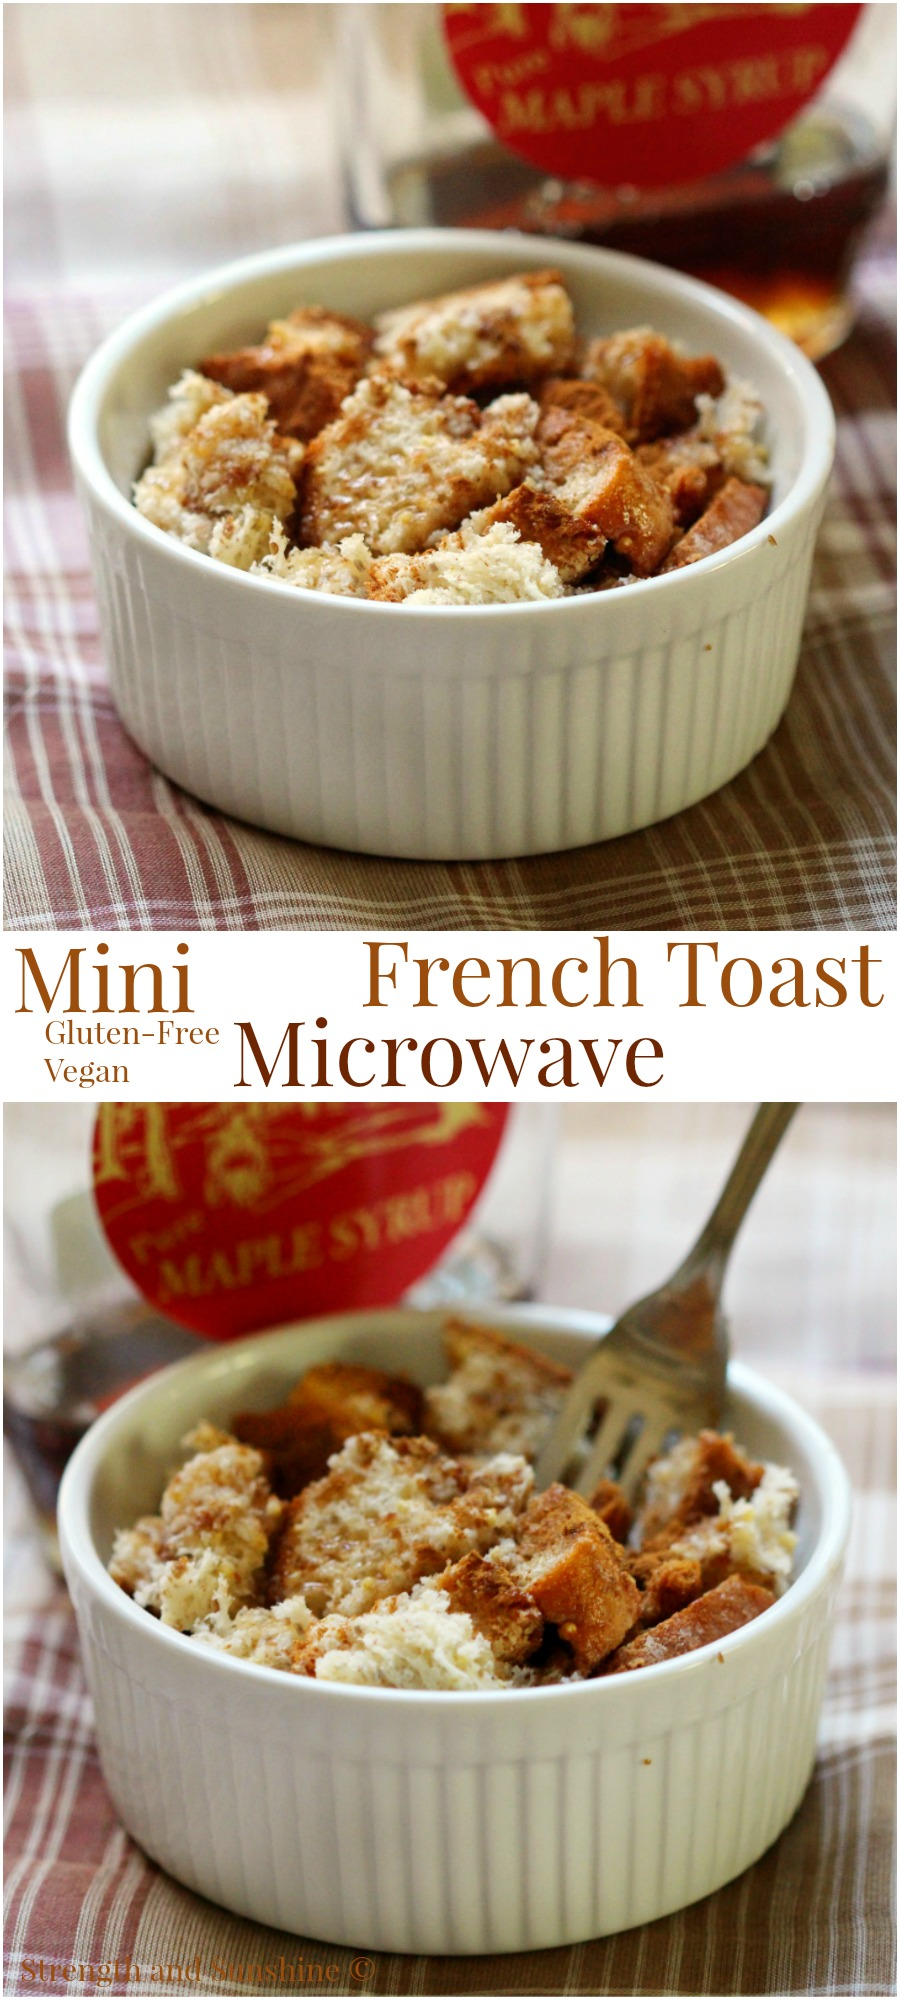 Mini Microwave French Toast | Strength and Sunshine @RebeccaGF666 When you need French toast in a flash! 1, 2, 3 in the microwave, gluten-free and vegan; breakfast will never be boring again, even when you're in a rush! Plus there's no mess to clean up!